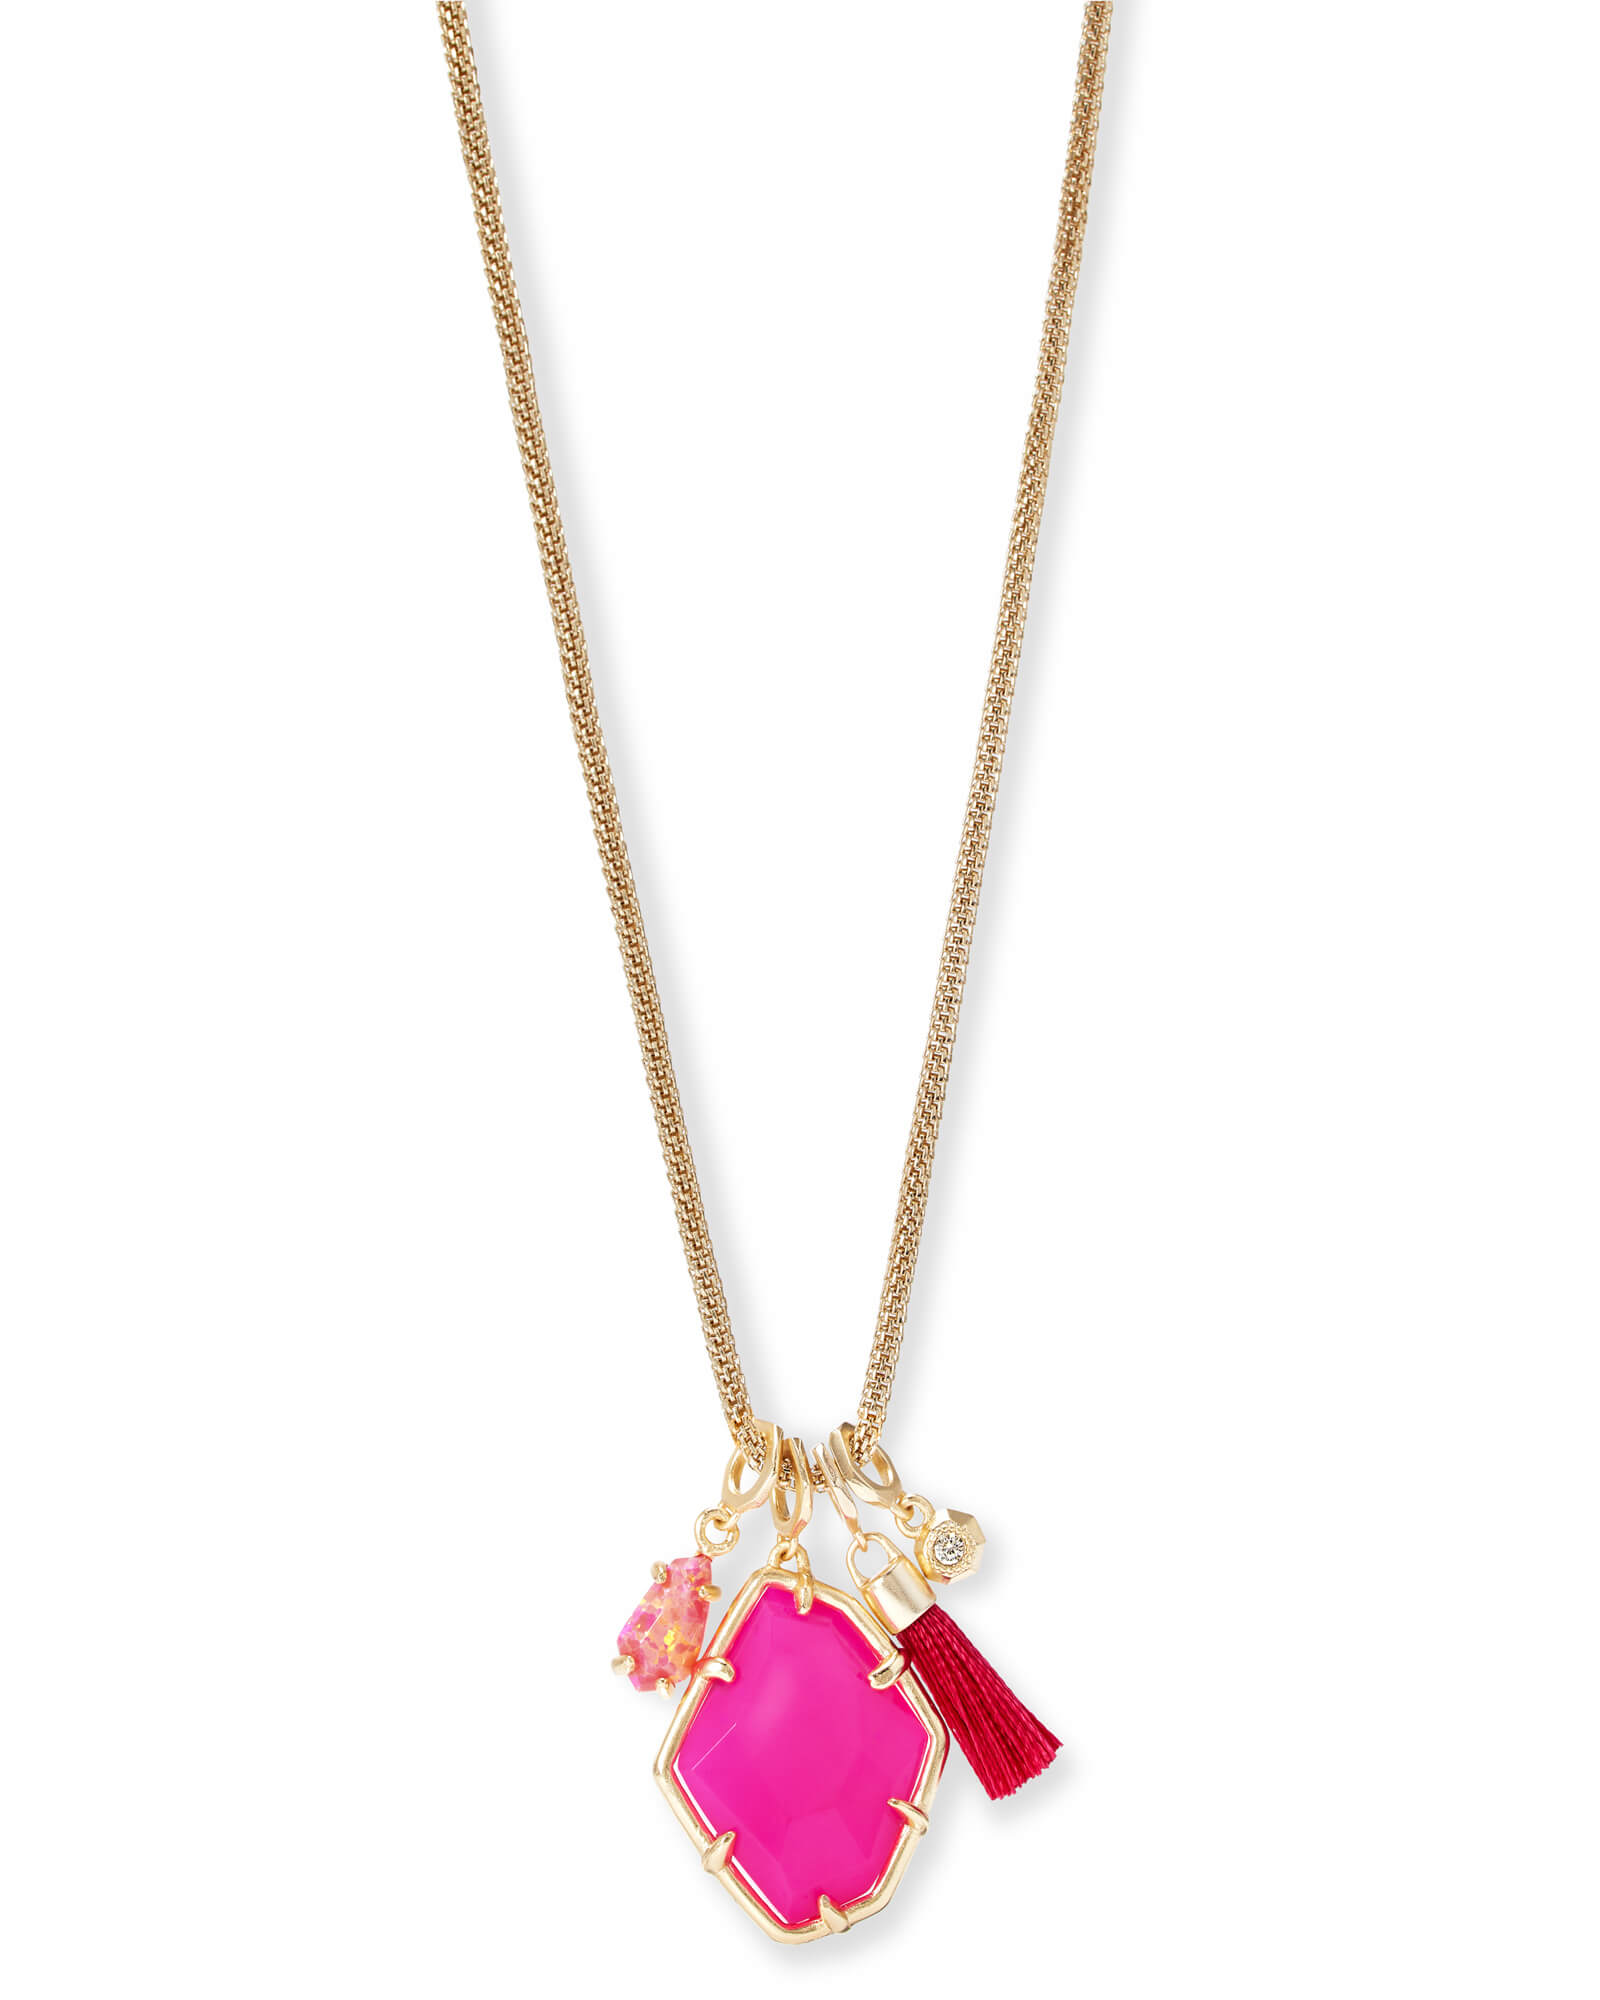 Hailey Gold Long Pendant Necklace In Pink Agate